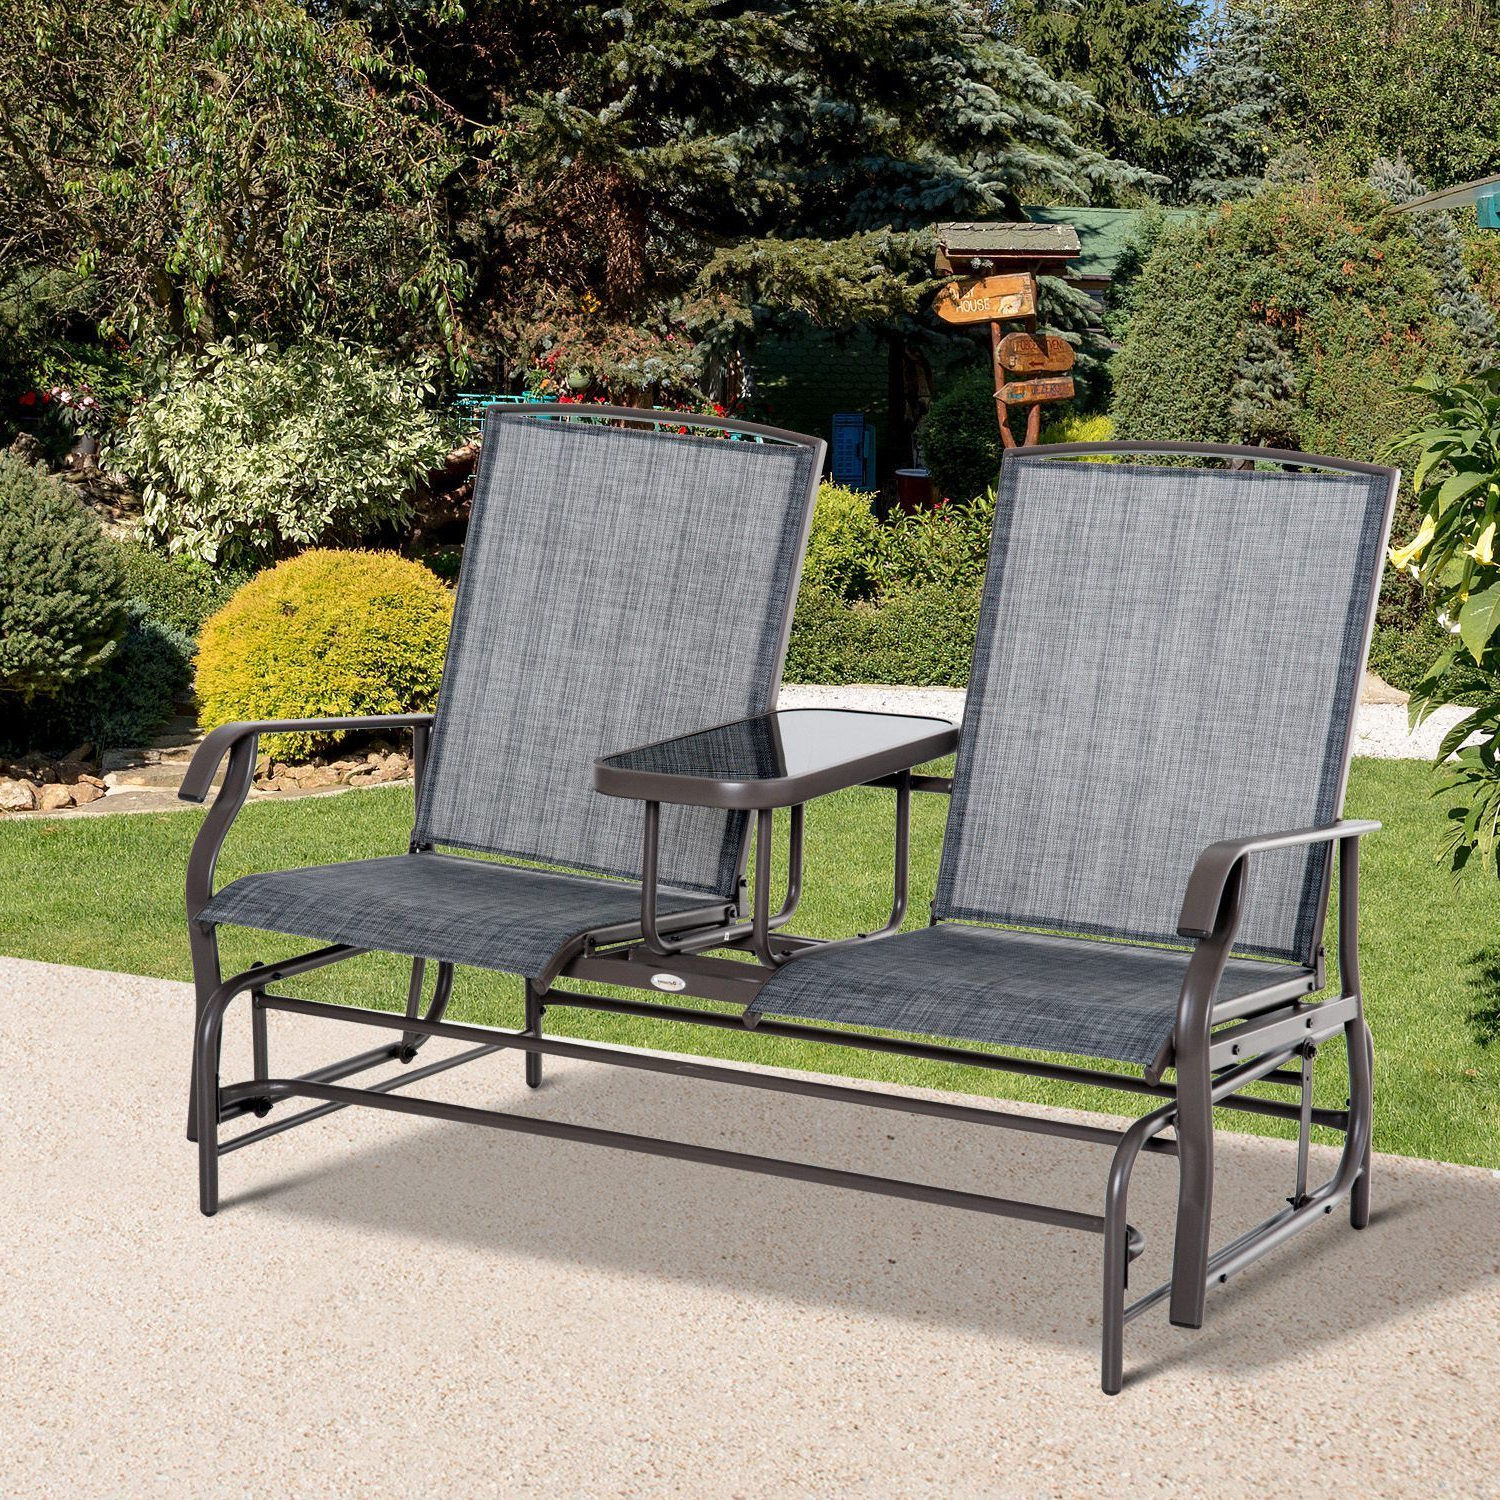 Well Liked Outdoor Patio Swing Glider Bench Chairs Pertaining To Outsunny 2 Seater Patio Glider Rocking Chair Metal Swing Bench Furniture Table (View 17 of 25)